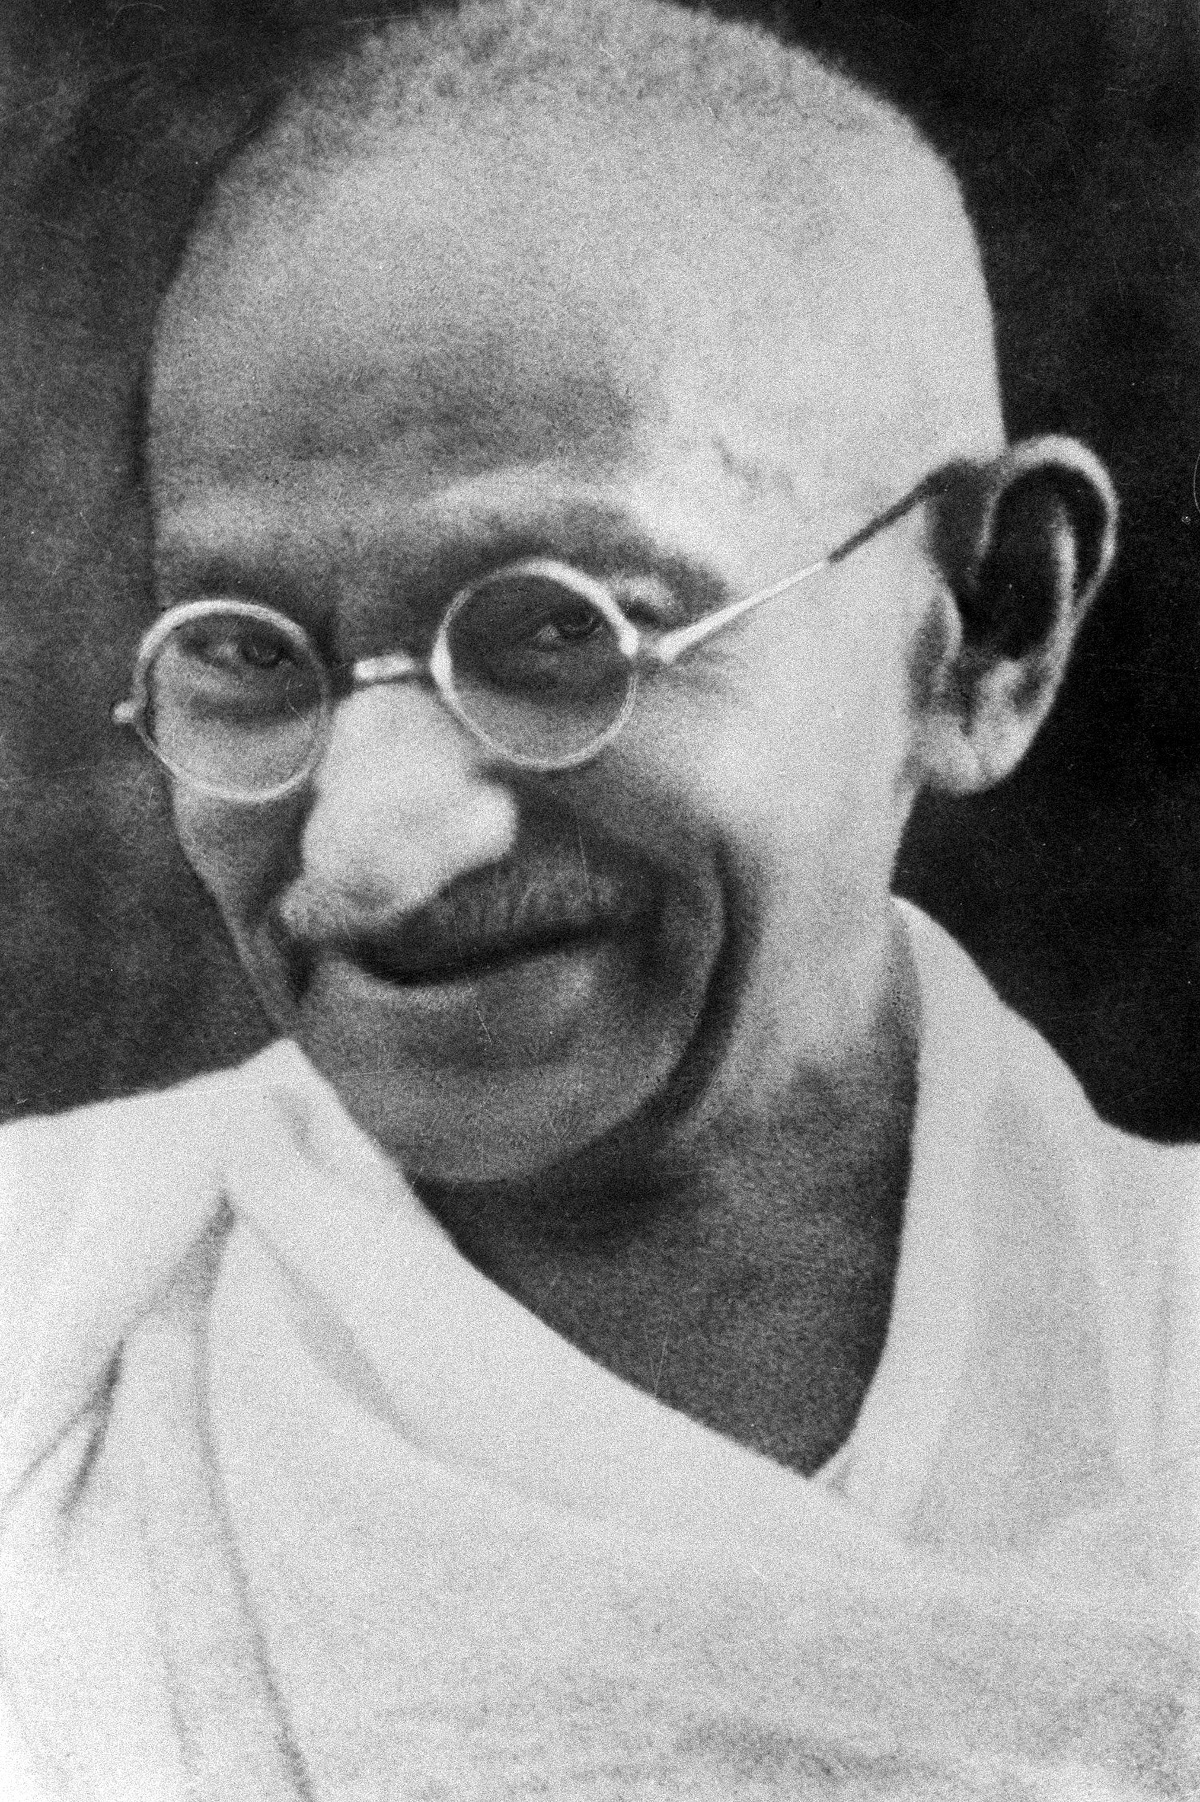 On the picture ist Mahatma Gandhi